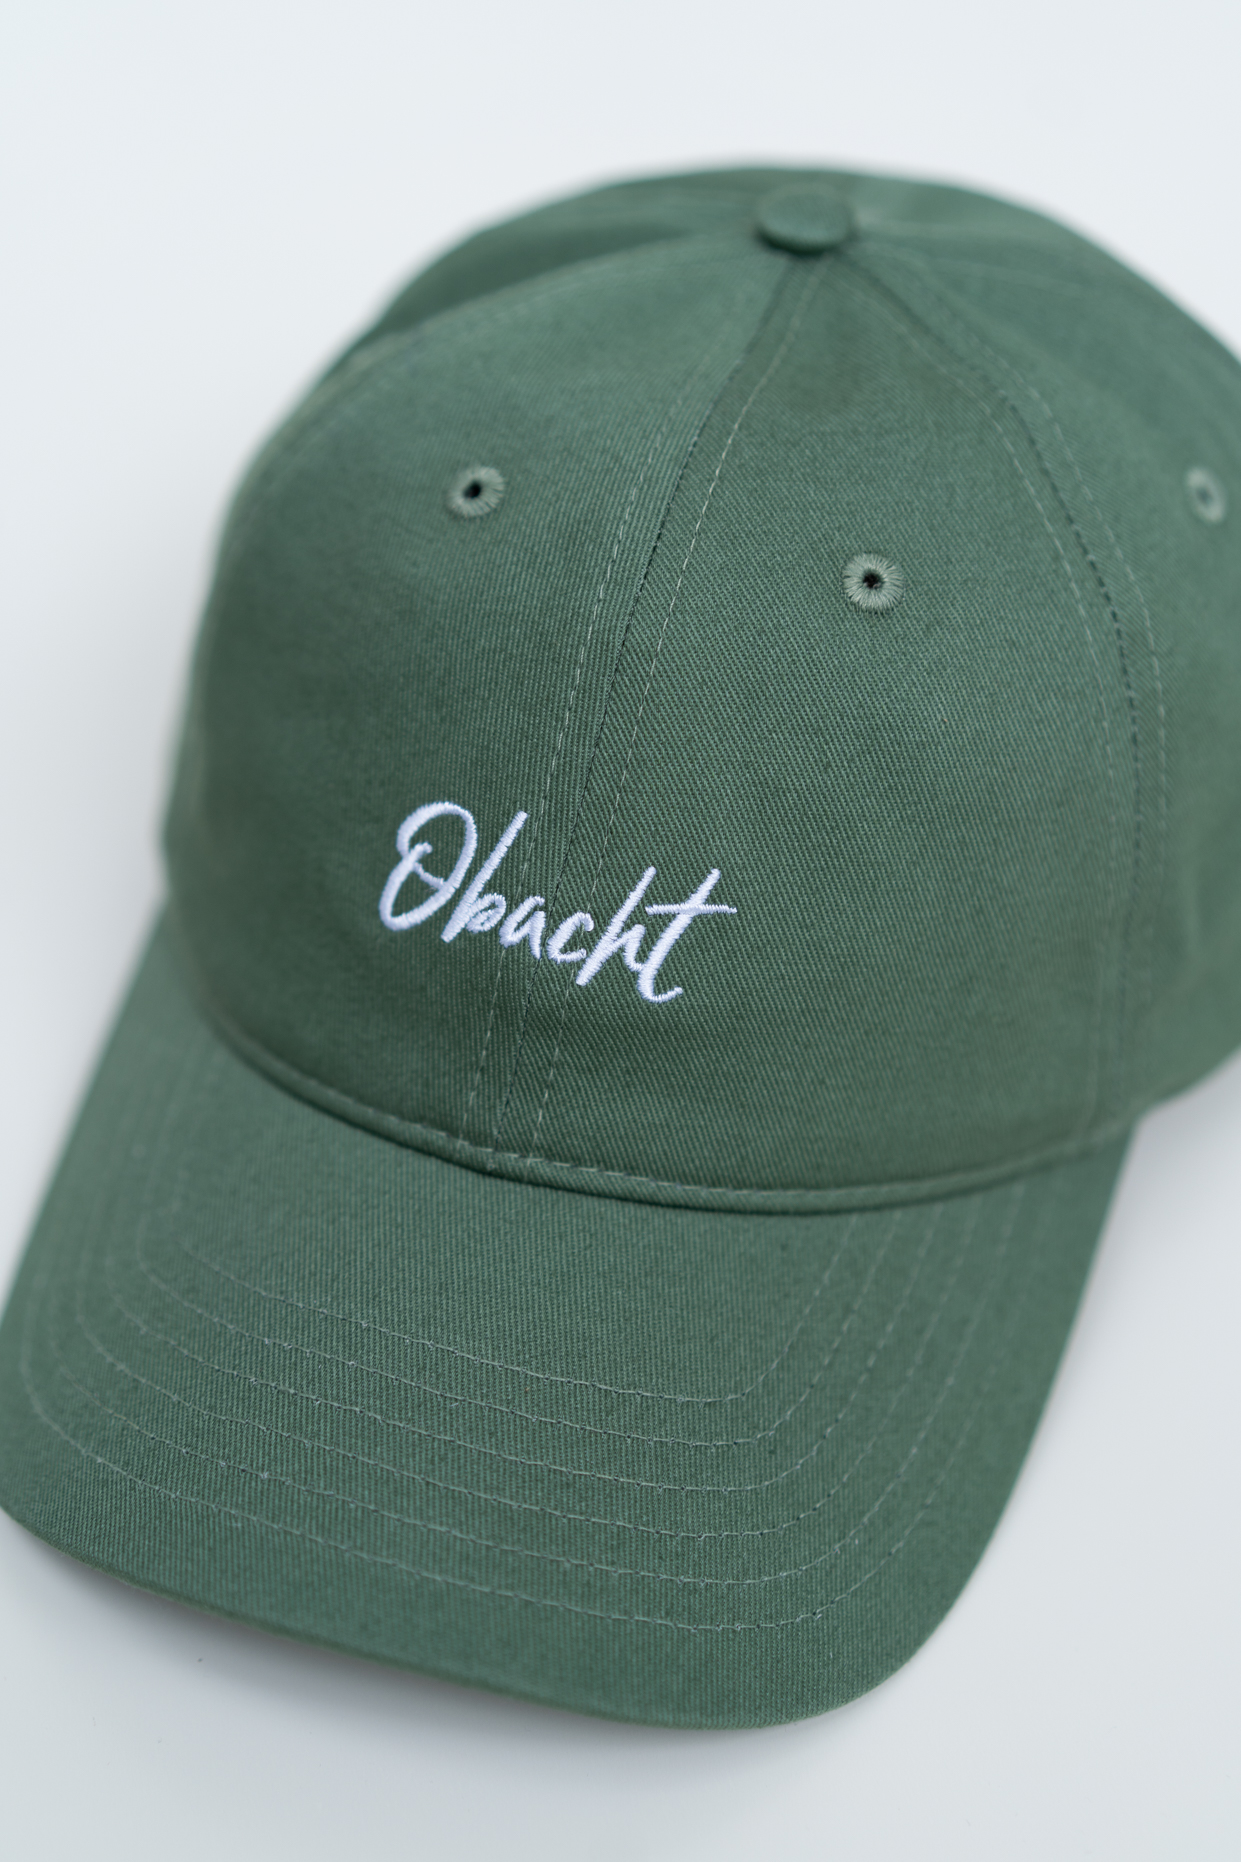 Curved Cap Obacht